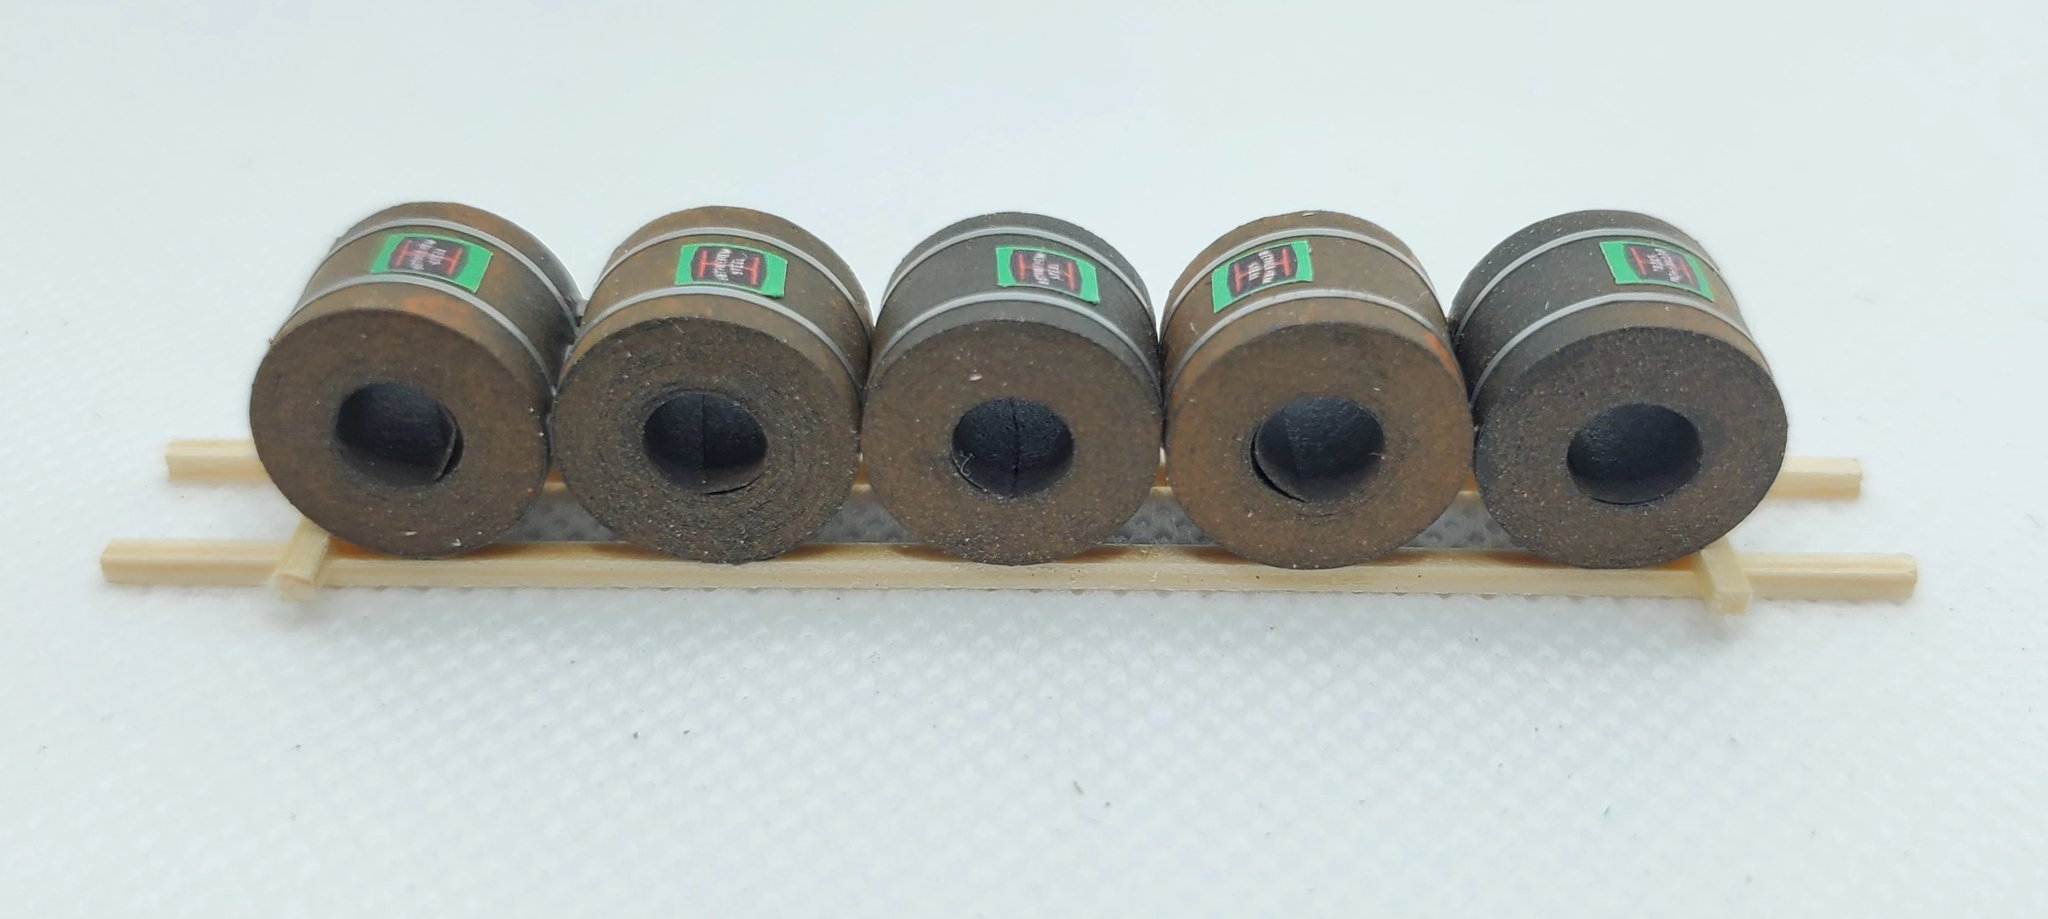 N Scale - CG Model Trains - 13219-C - Railcar Loads - Painted/Lettered - Sheet Rolls